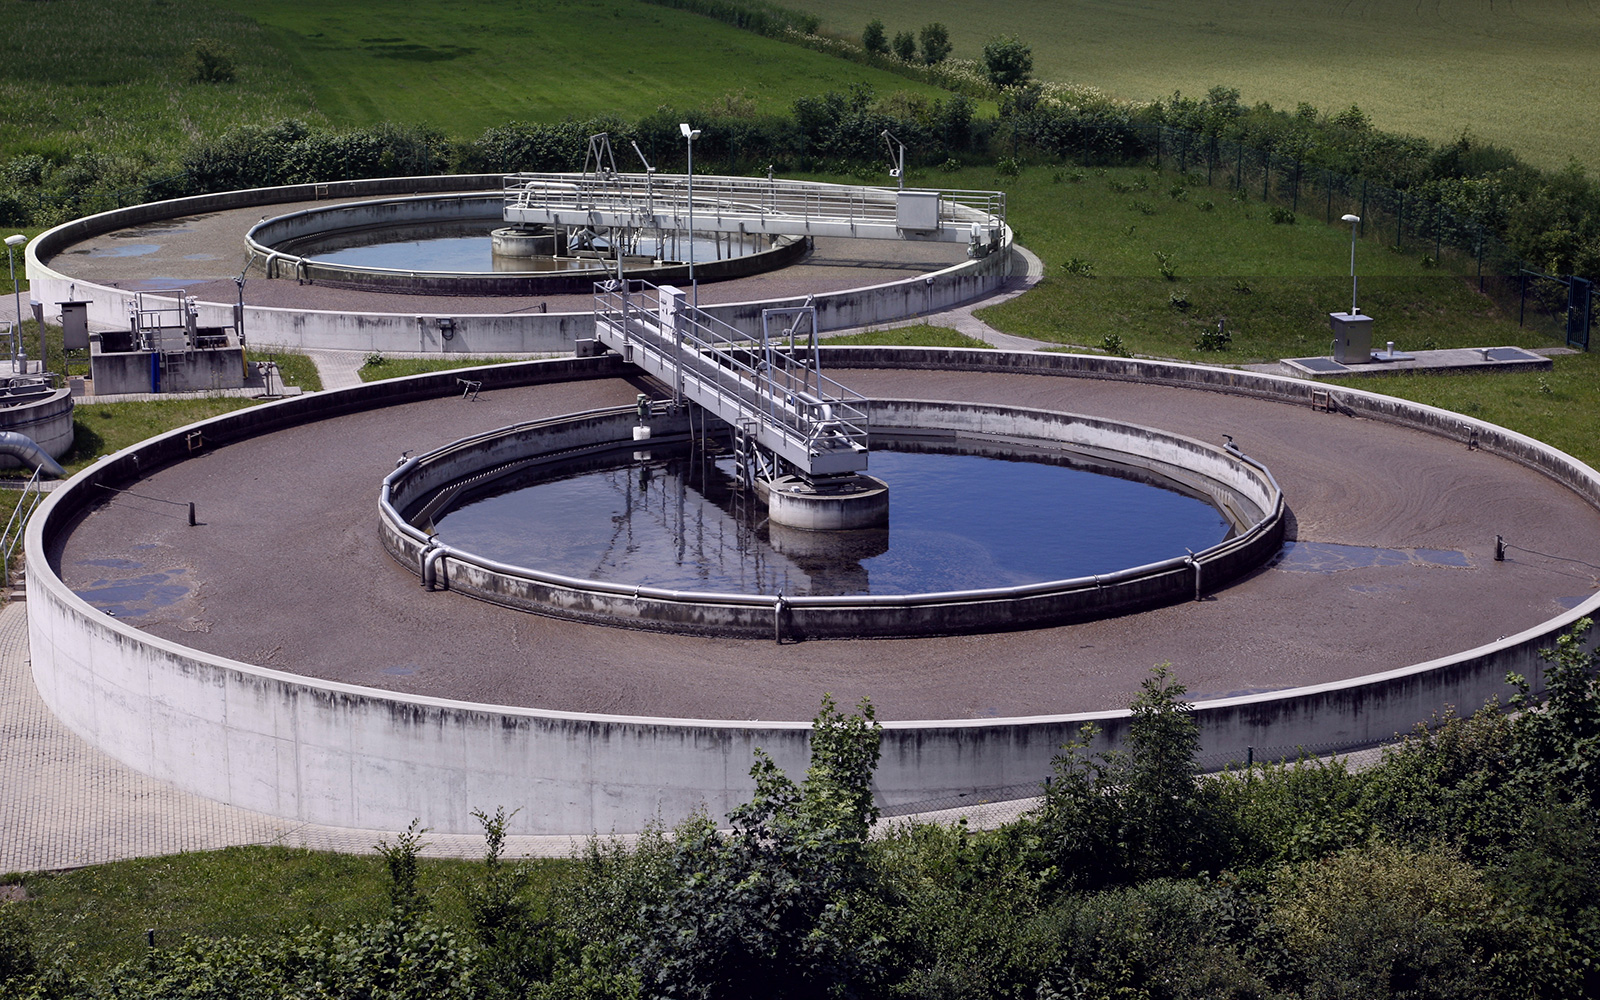 Aerial view of two large circular wastewater treatment tanks